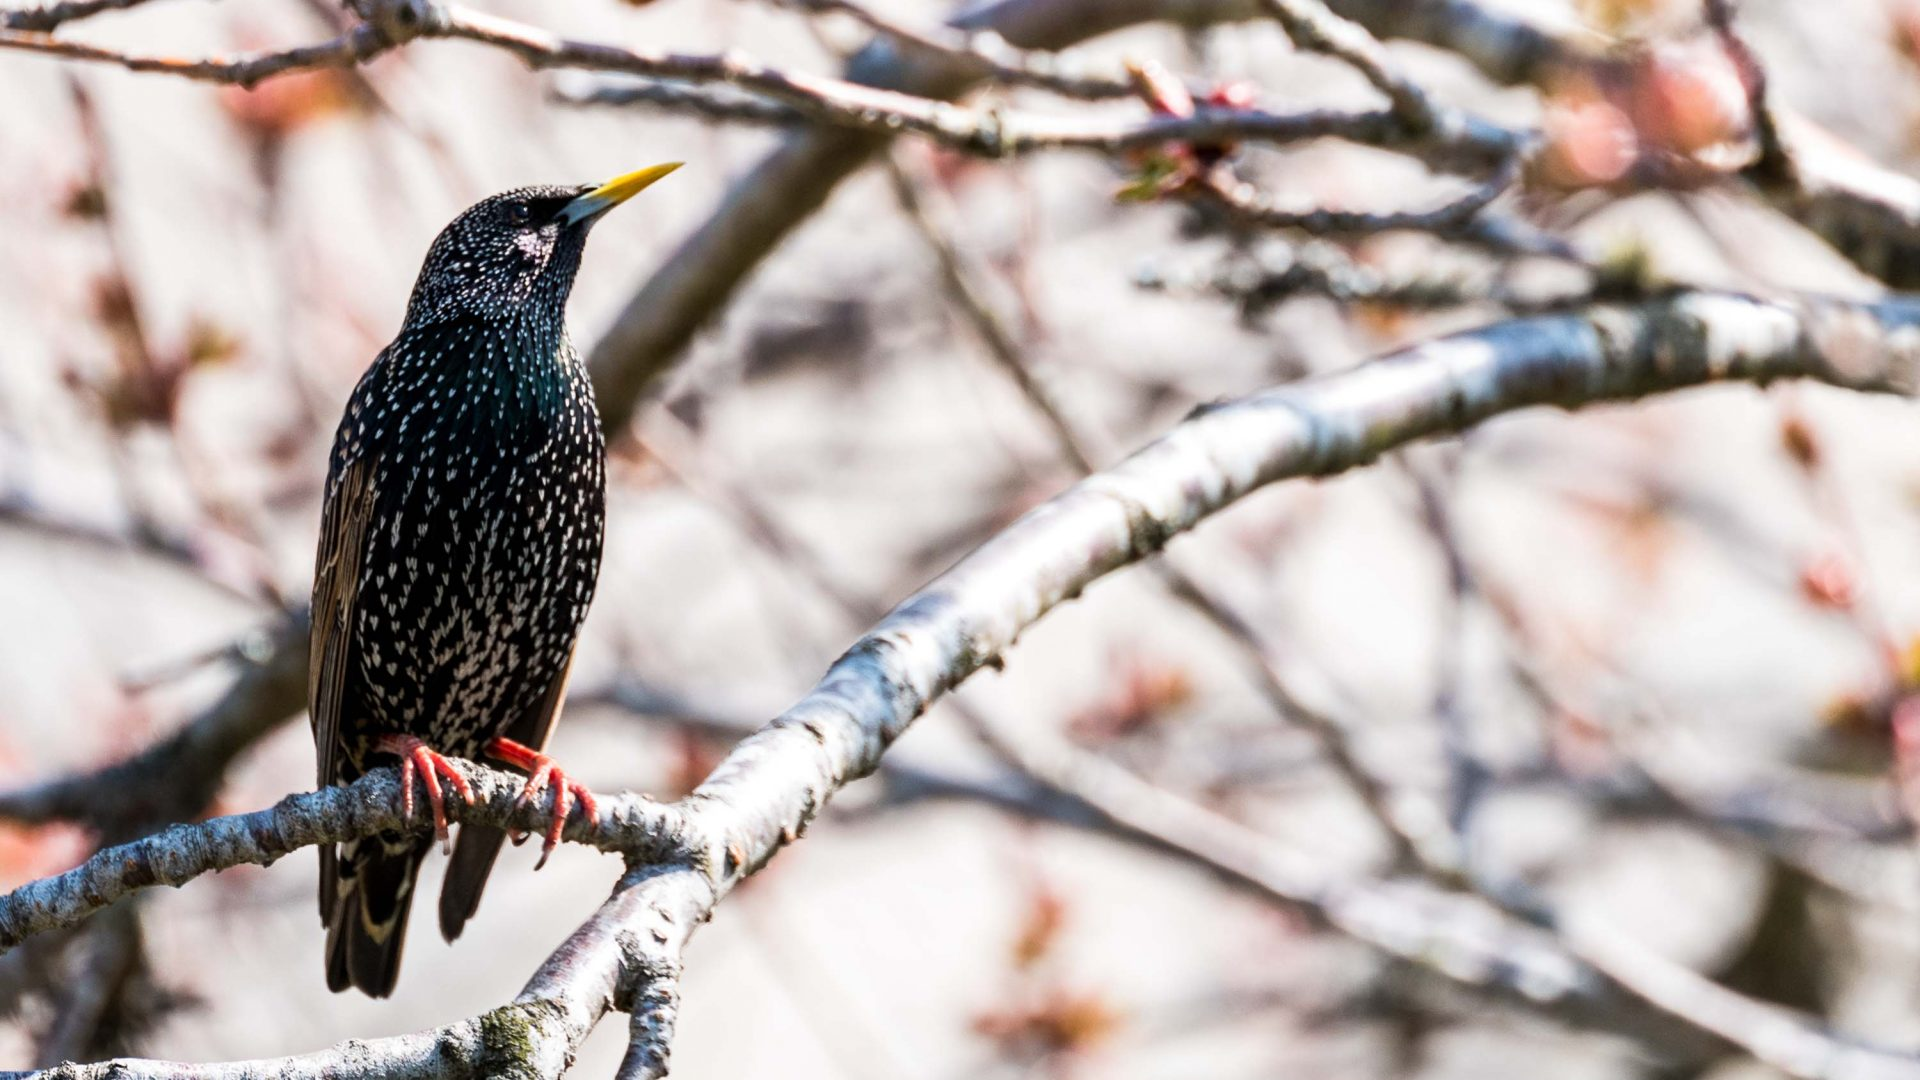 A starling in Grantown-on-Spey, Scotland.